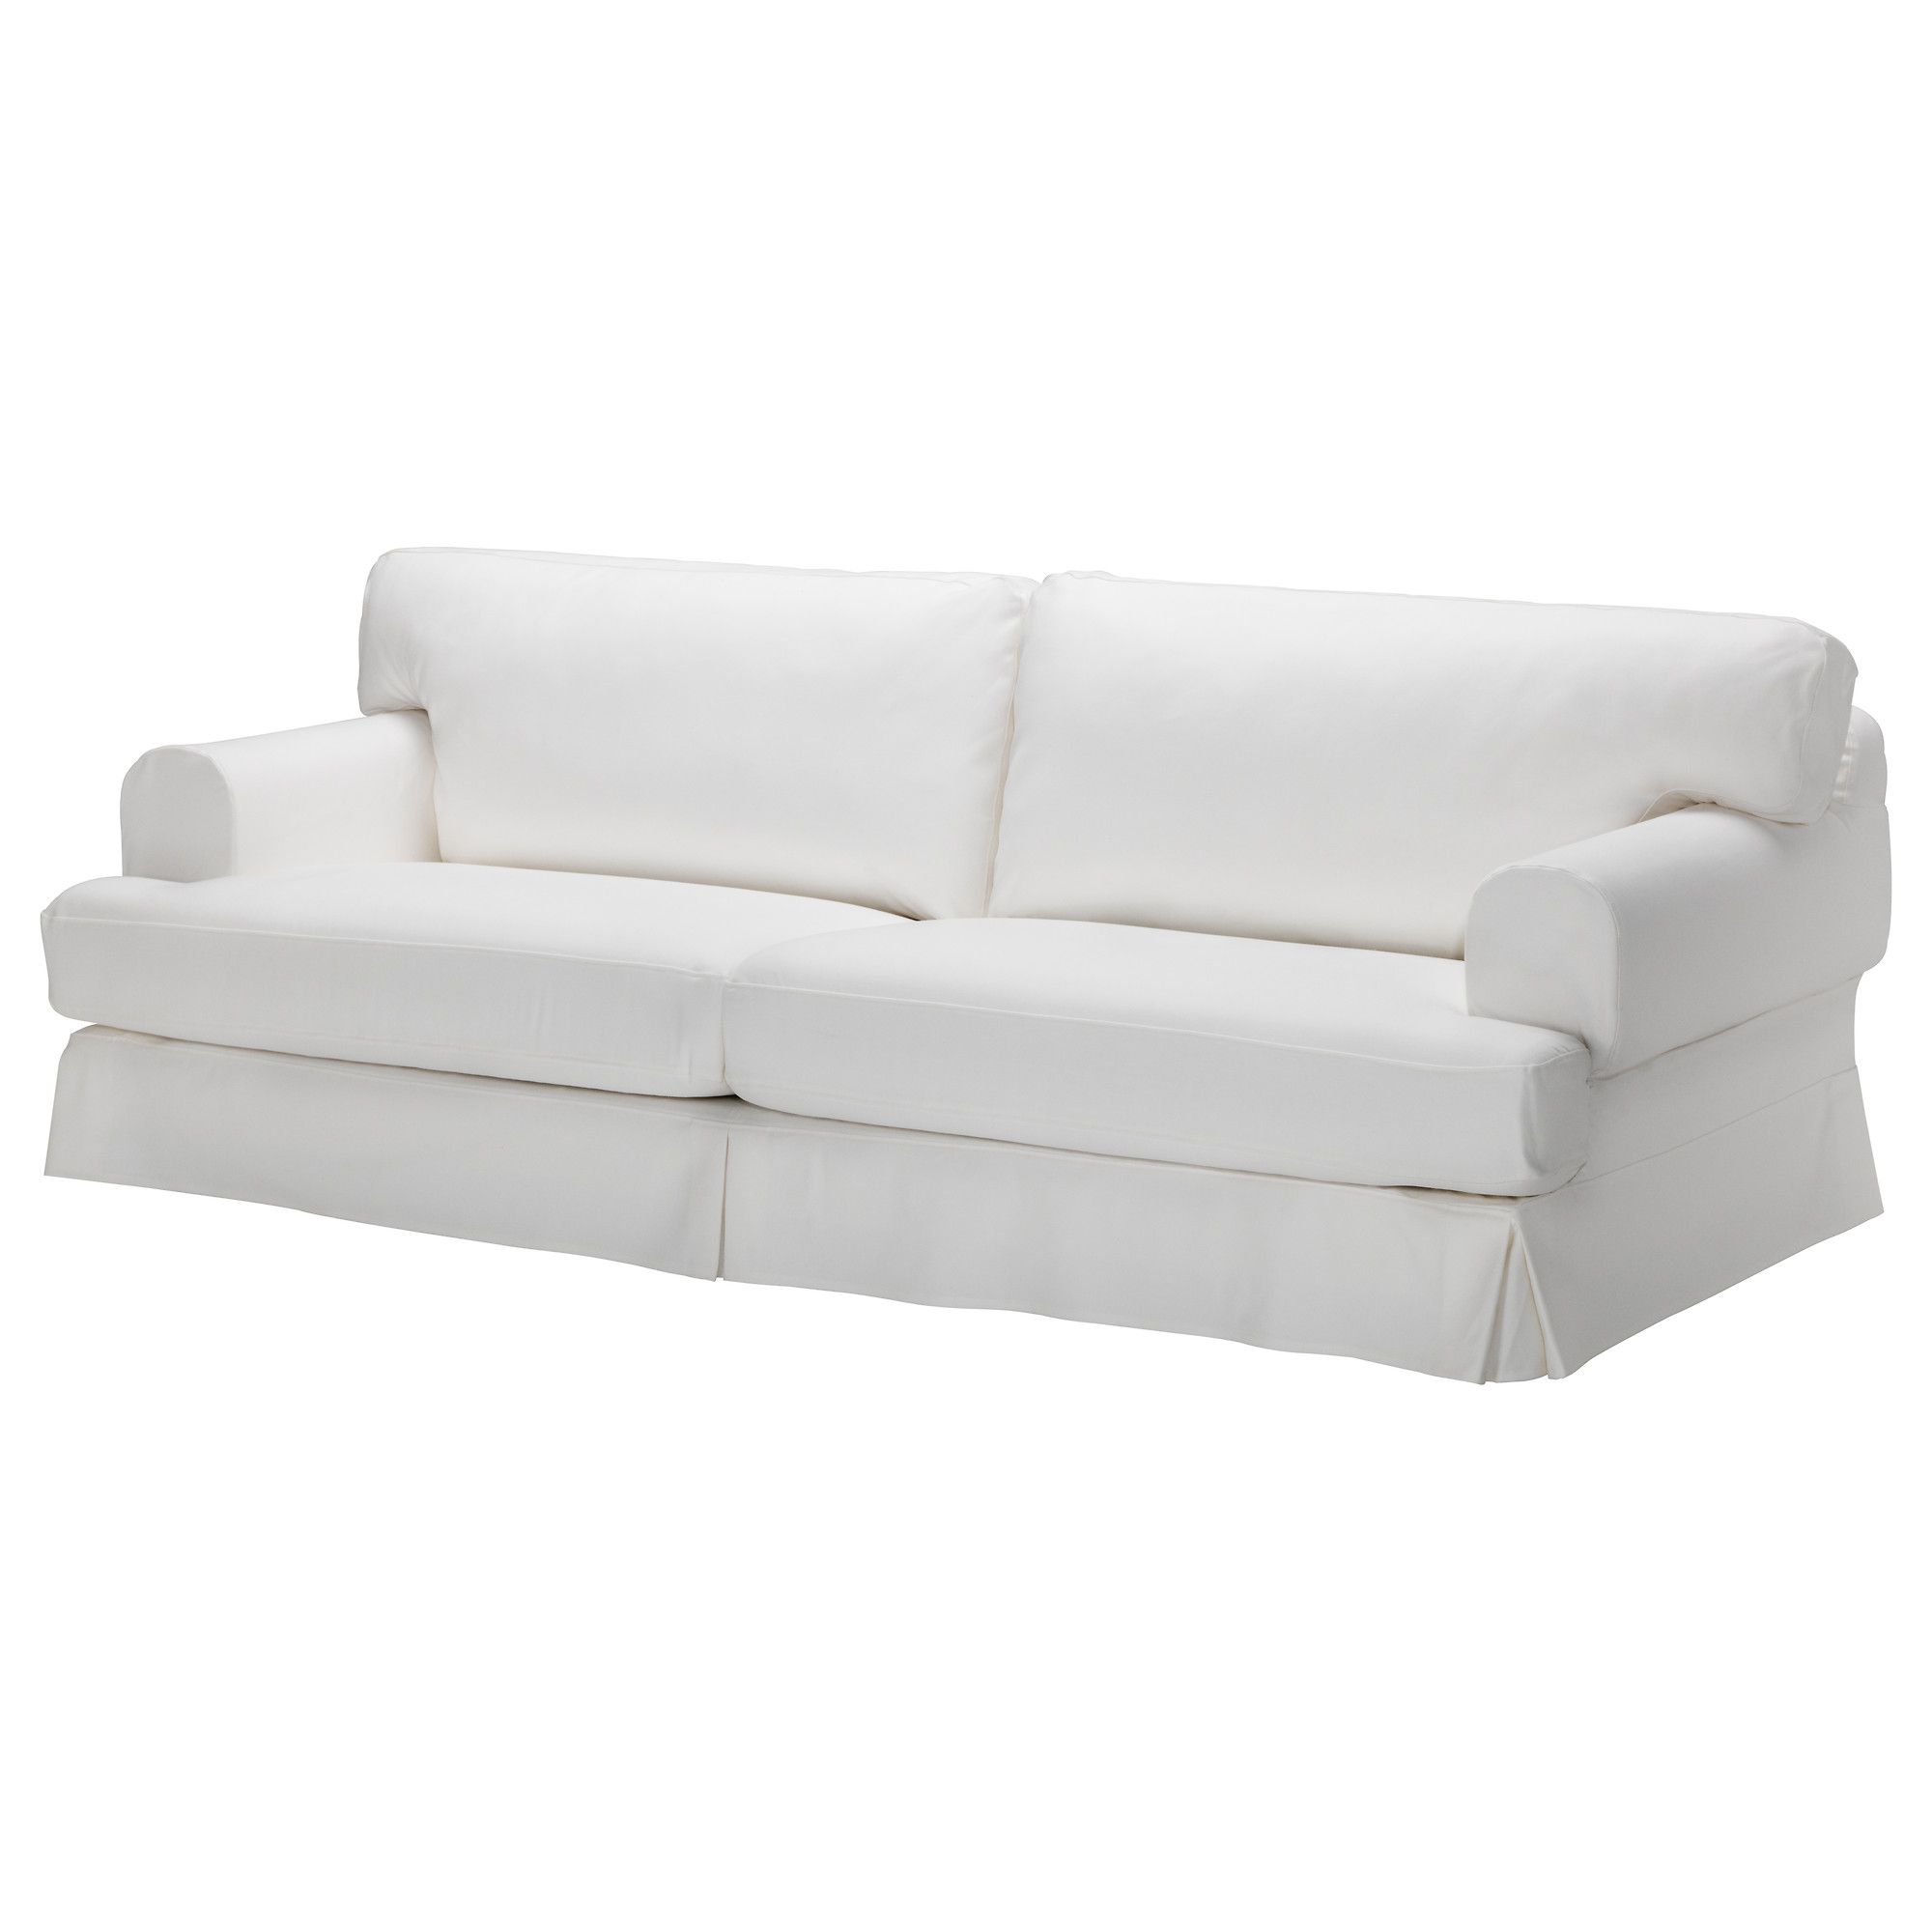 Ikea Hovas Sofa For Narrow Doorway HovÅs Gobo White This Probably Won 39t Be